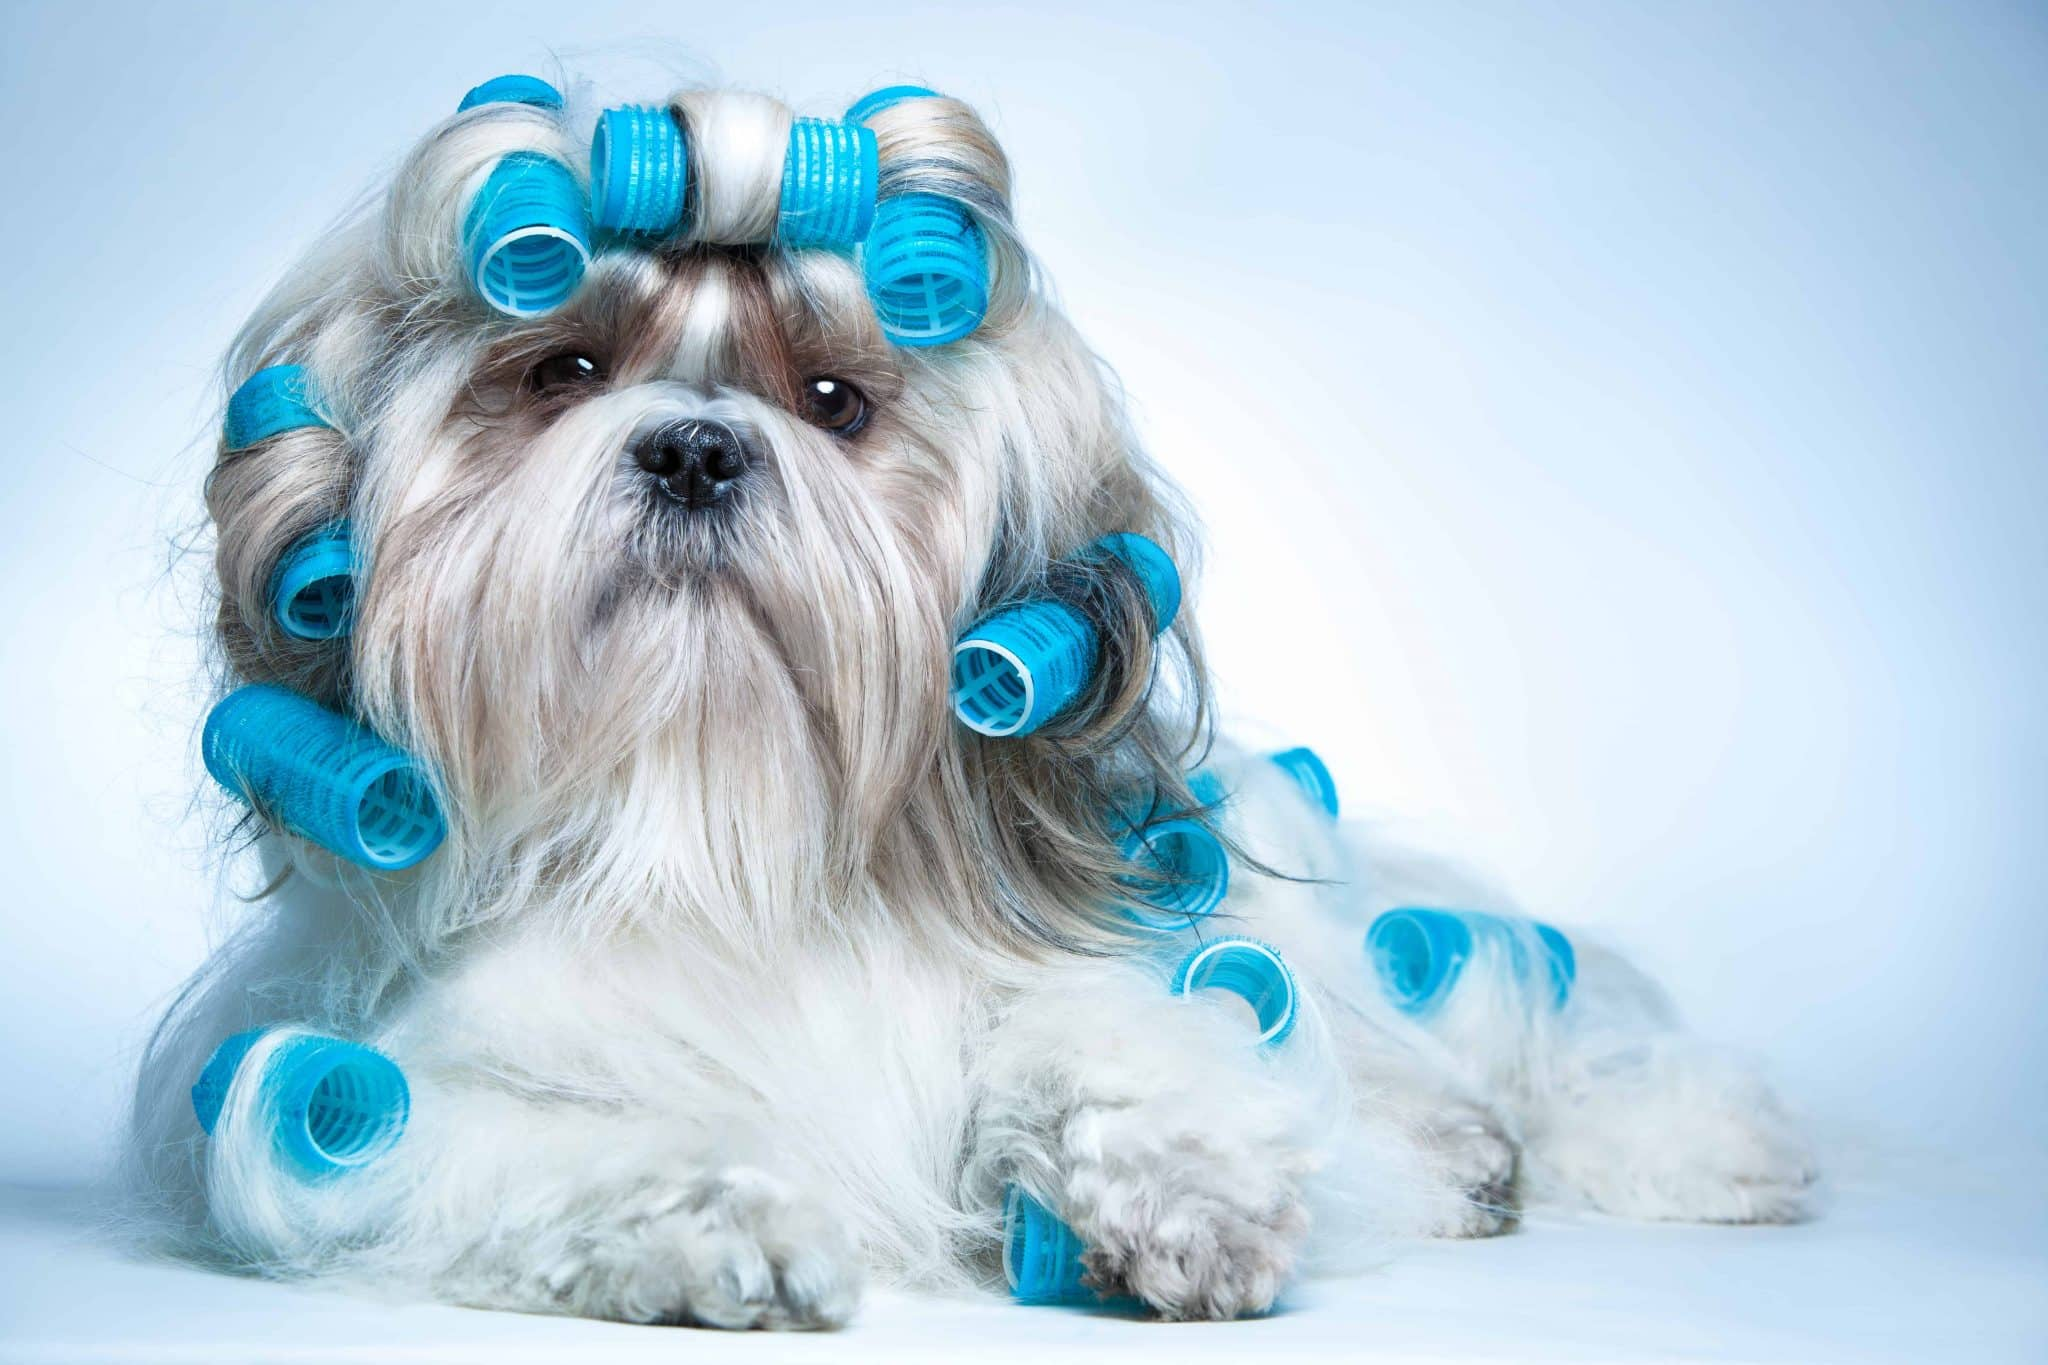 A shih tzu dog with curlers. Could you make money as an animal groomer?